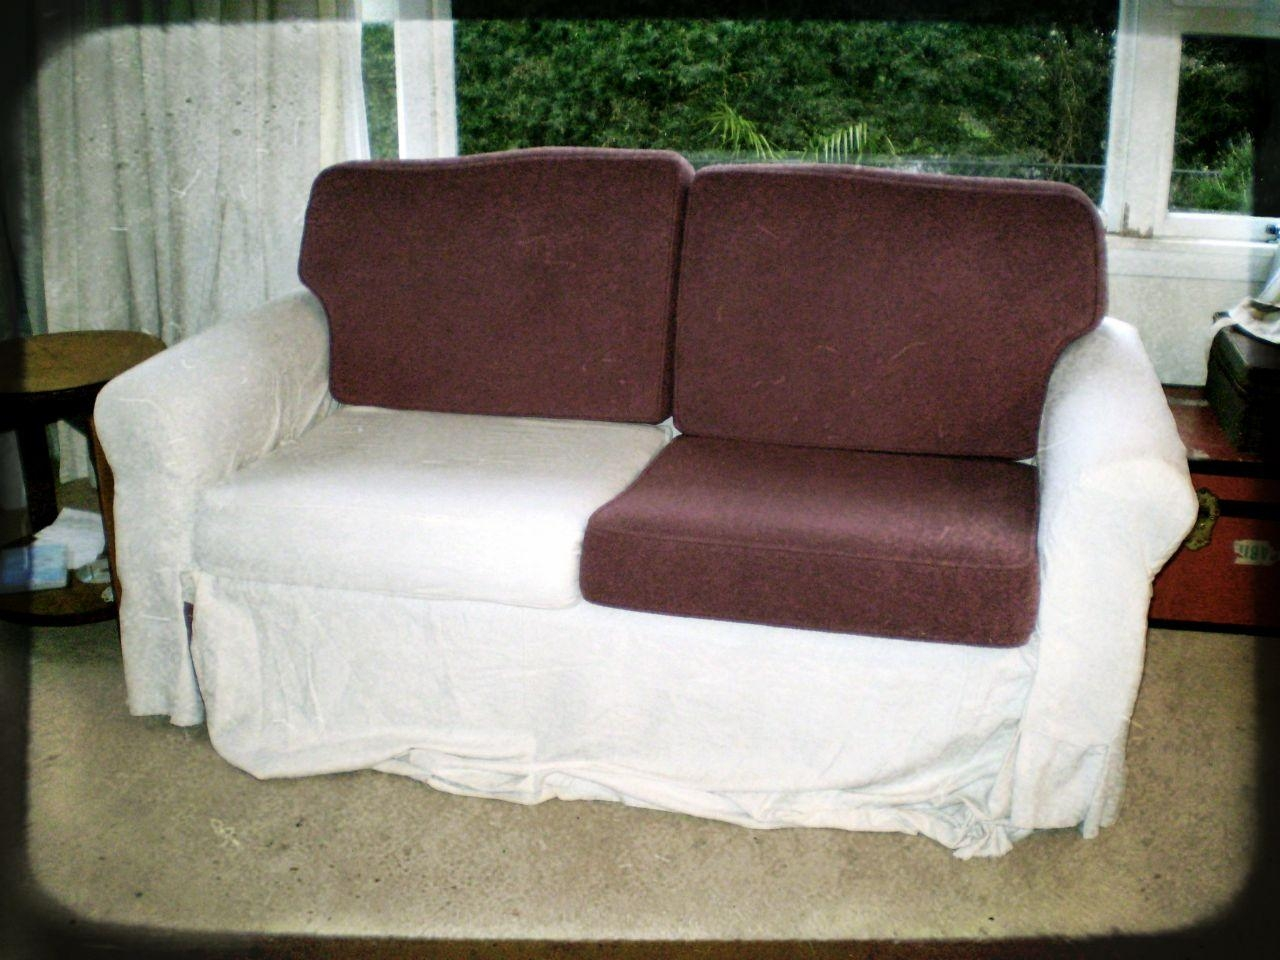 Furniture: Update Your Living Room With Best Sofa Slipcover Design Inside Canvas Sofa Slipcovers (View 2 of 20)